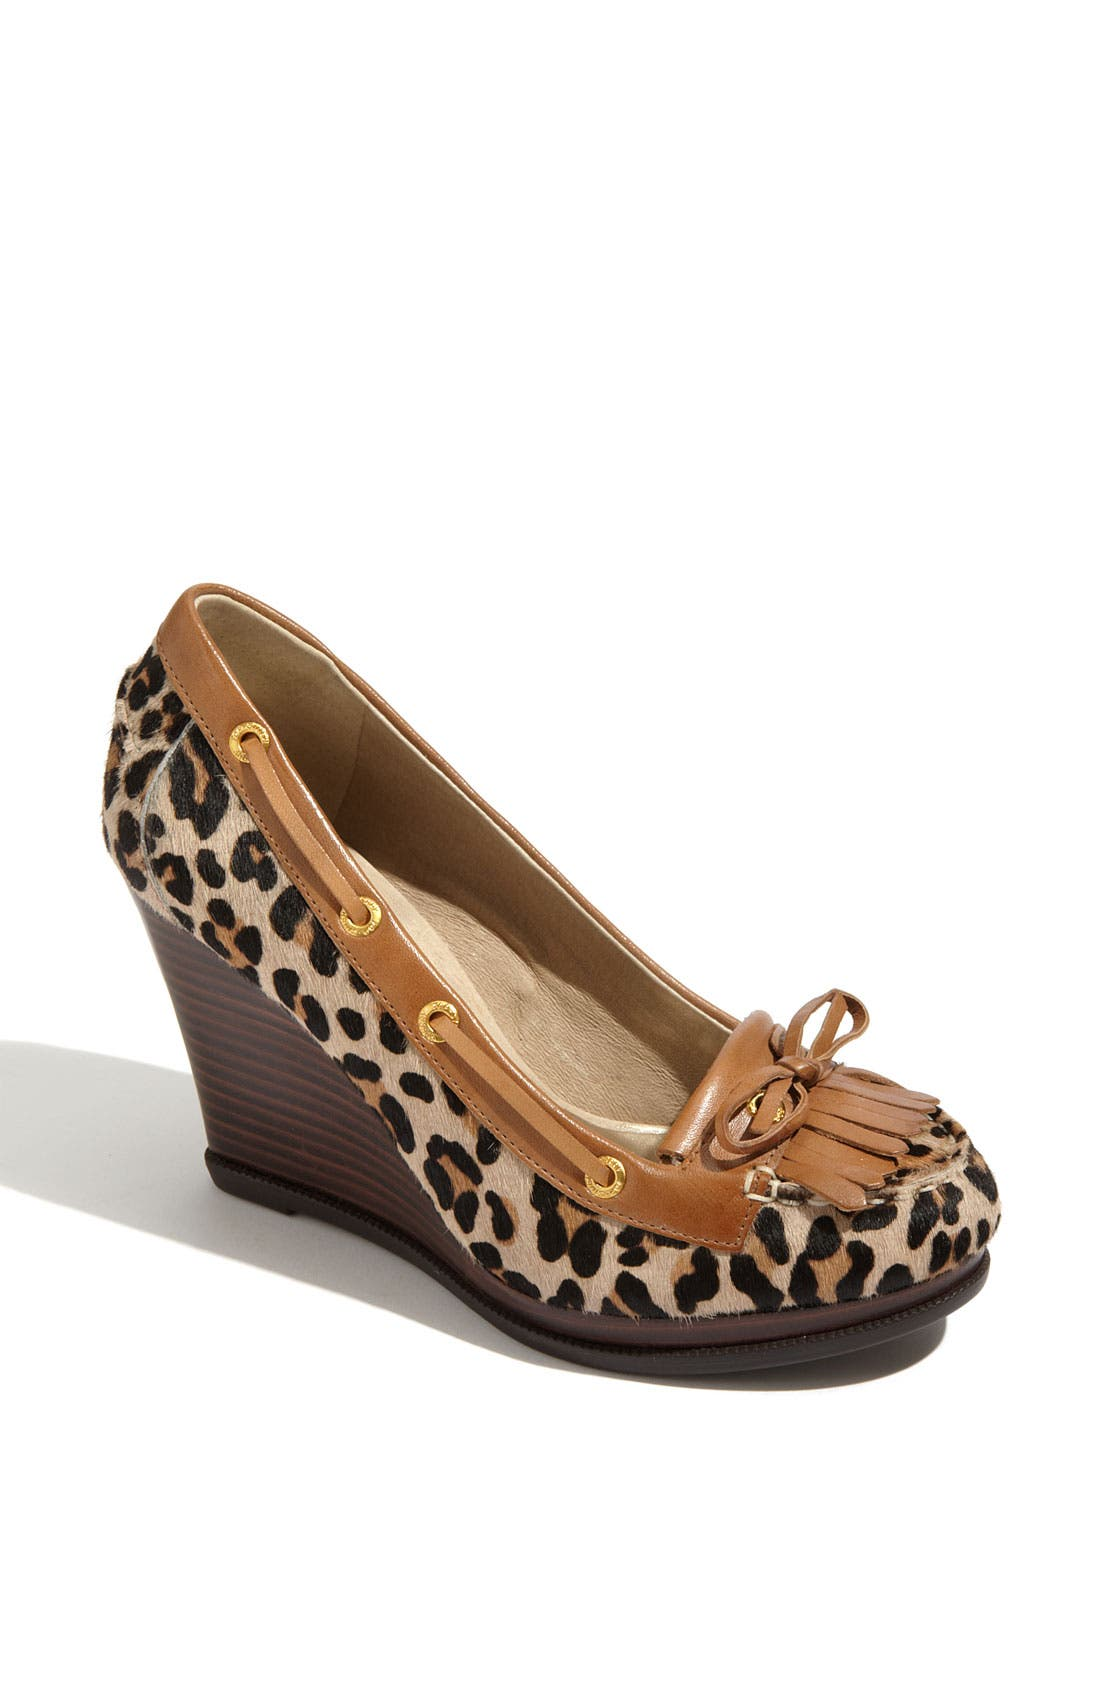 Main Image - Sperry Top-Sider® 'Fairwind' Wedge Loafer